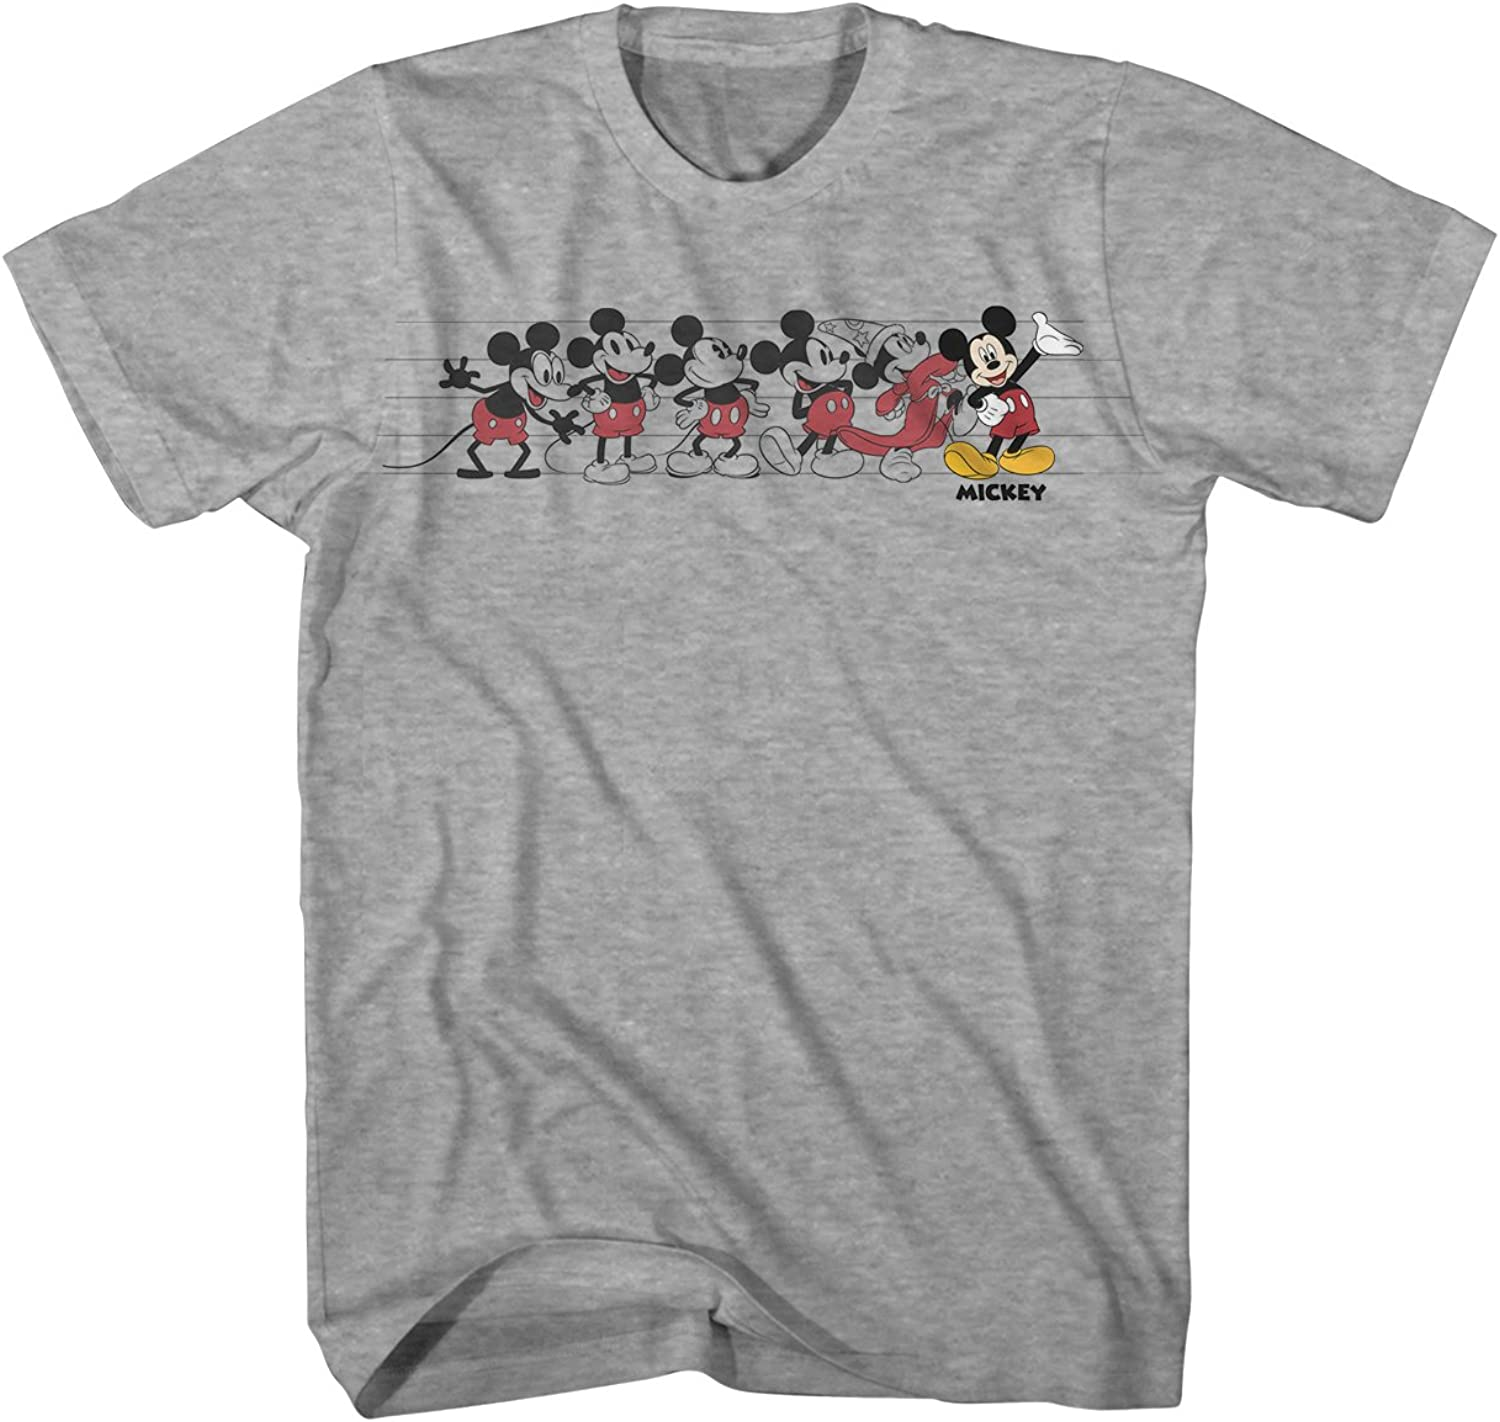 Mickey Mouse Graphic Tee Classic Vintage Disneyland World Adult Tee Graphic T-Shirt for Men Tshirt Clothing Apparel